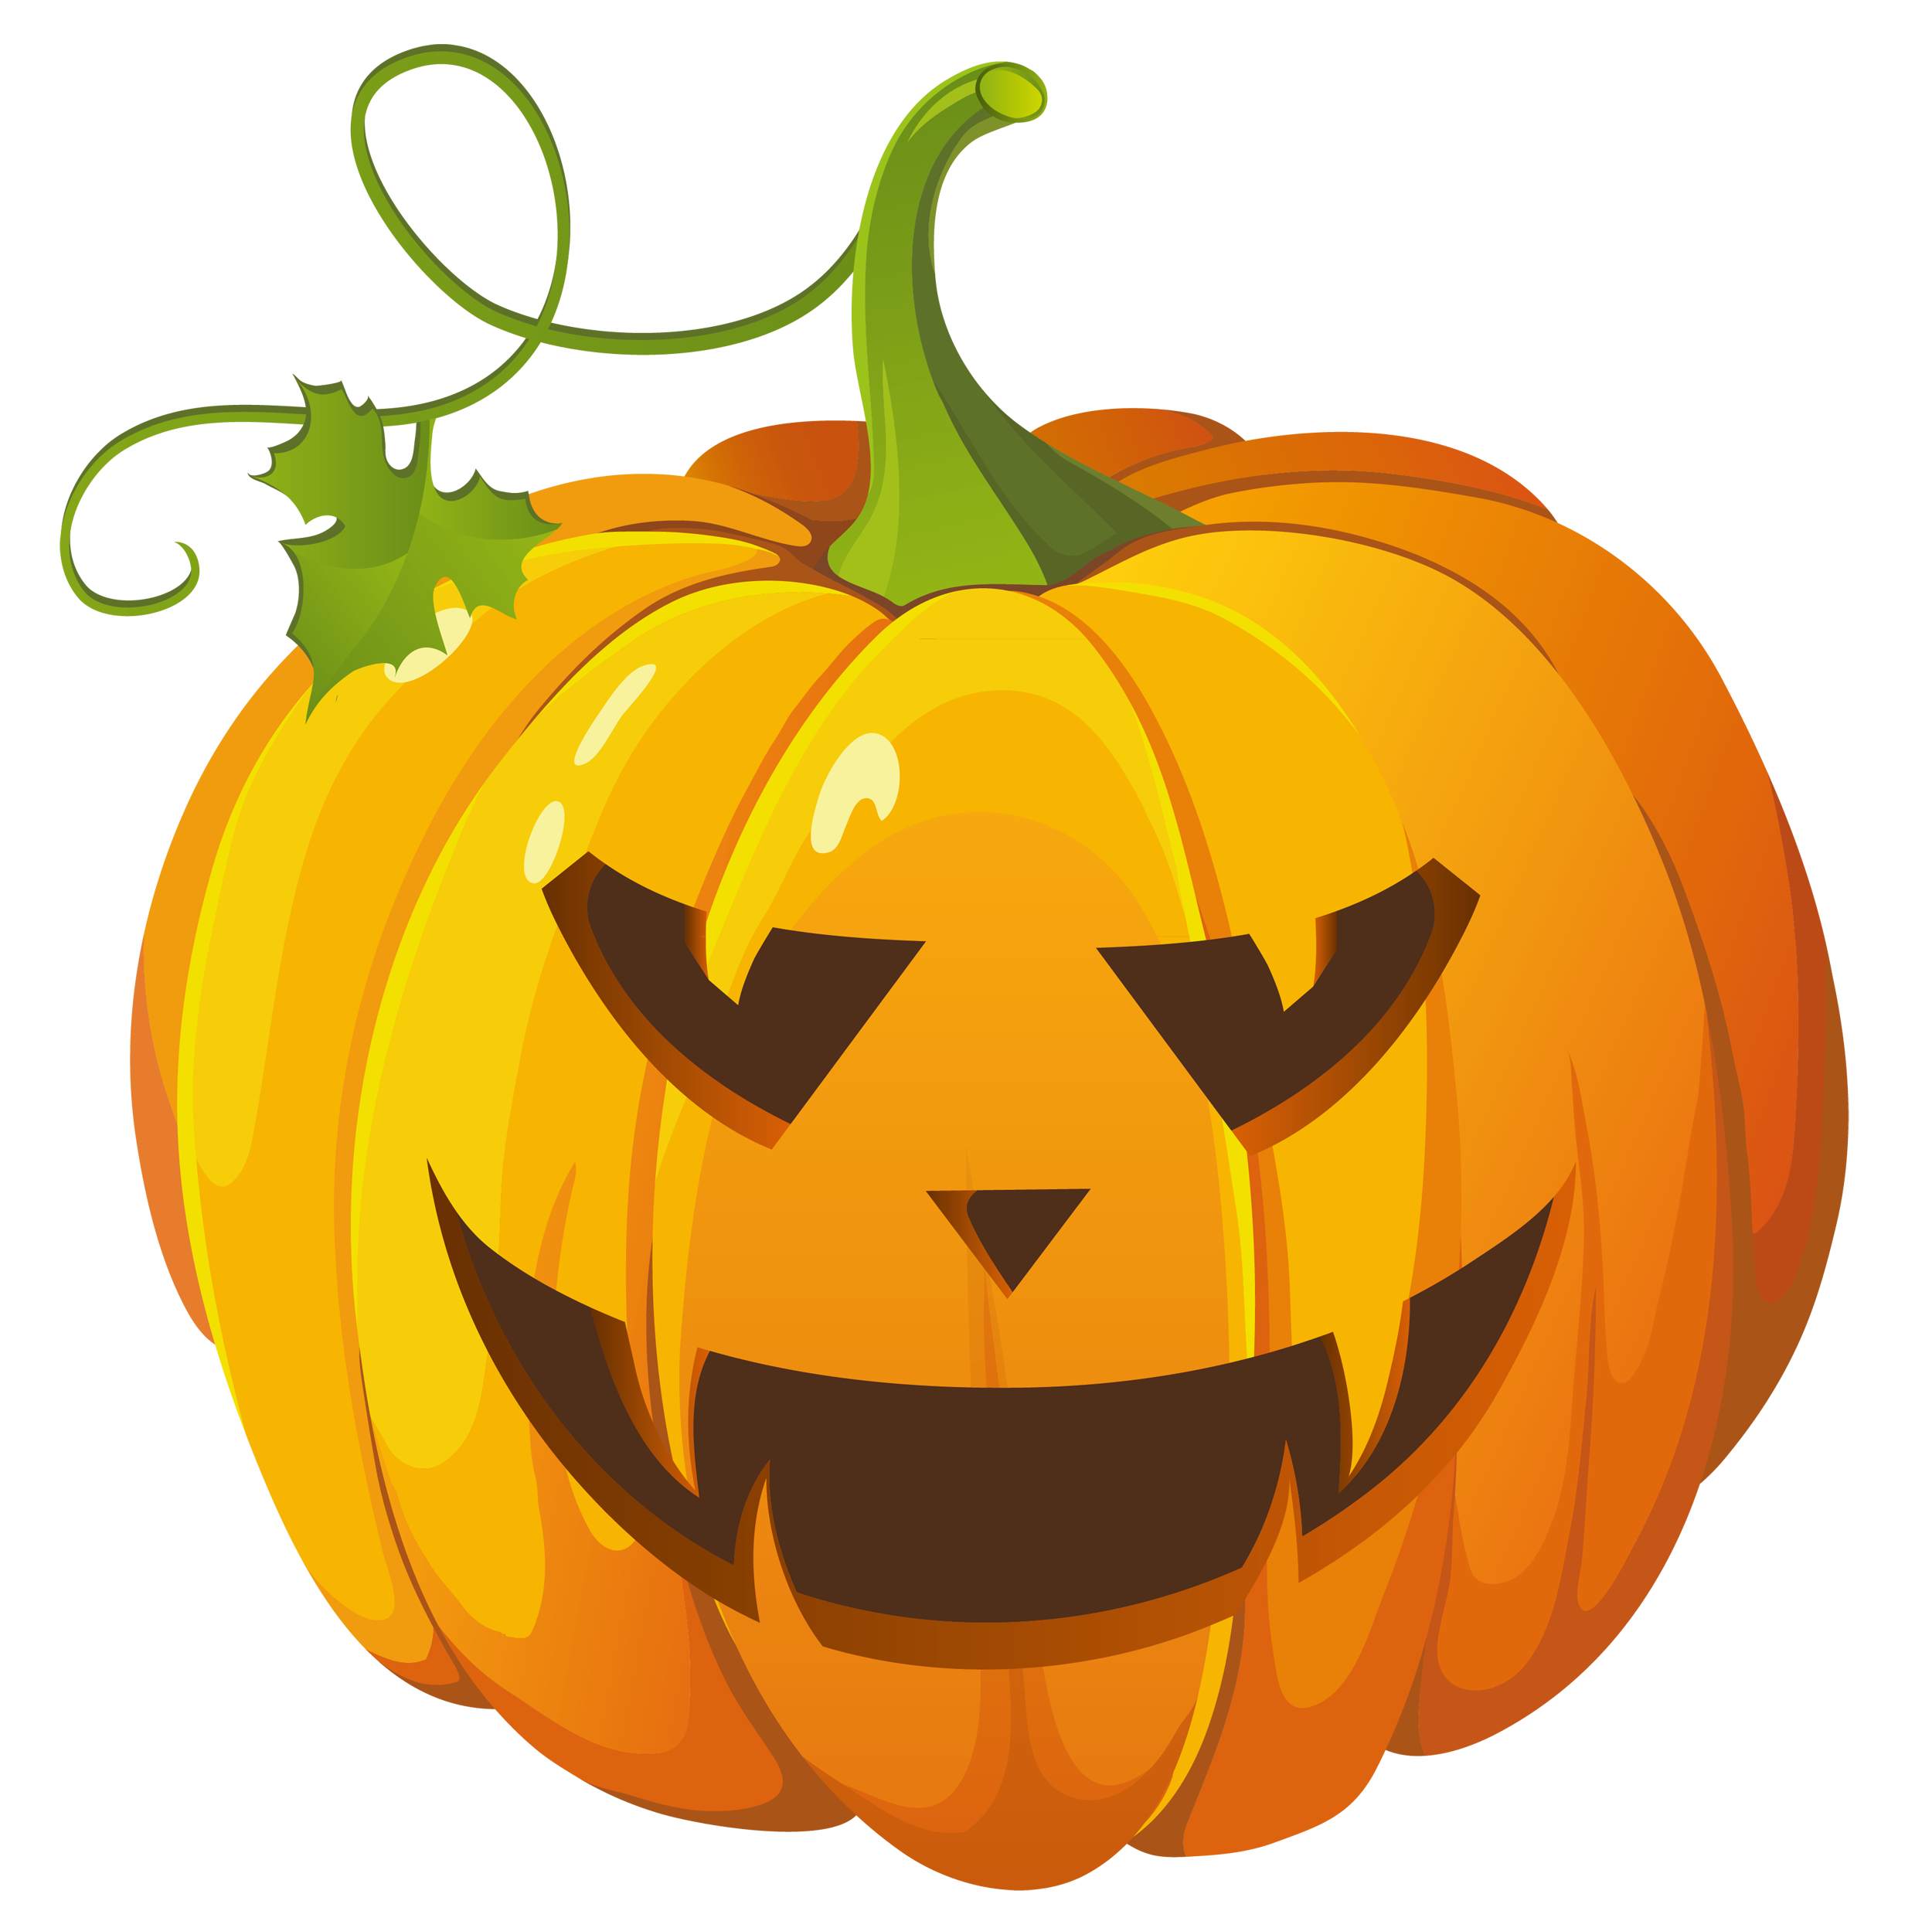 Free Pumpkin Clipart at GetDrawings.com | Free for personal use Free ... graphic free